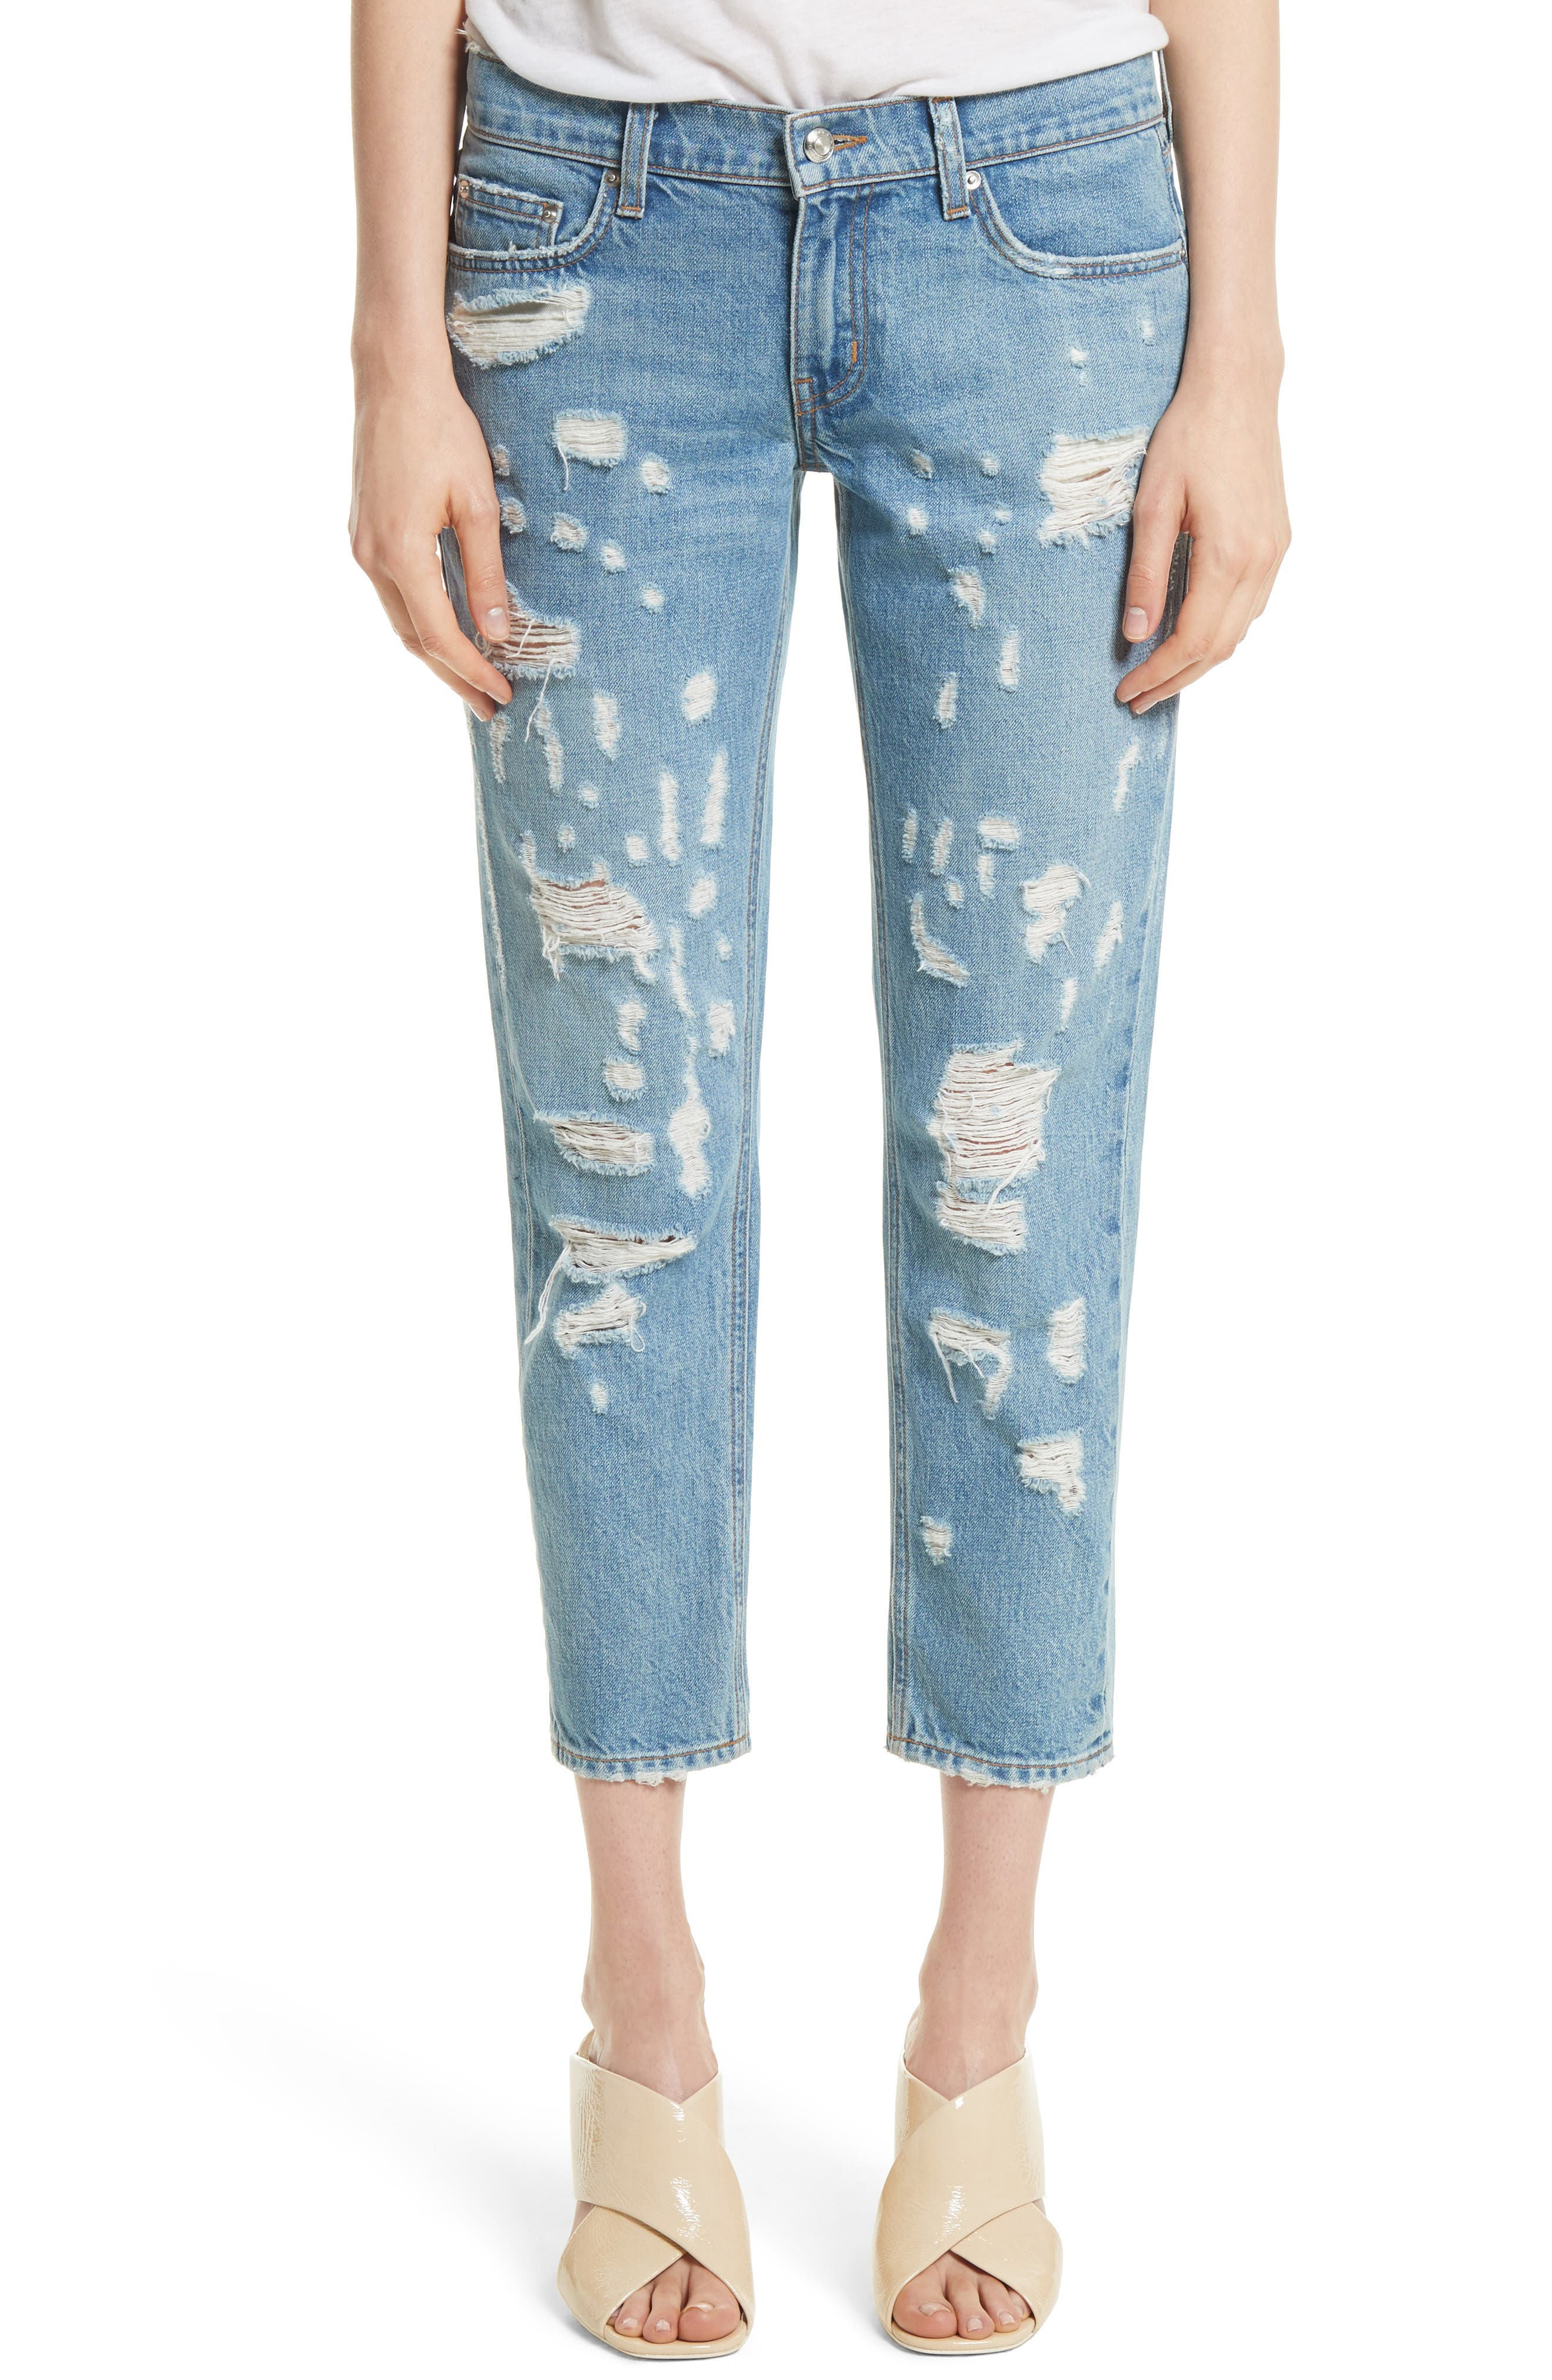 Derek Lam 10 Crosby Mila Slim Girlfriend Jeans